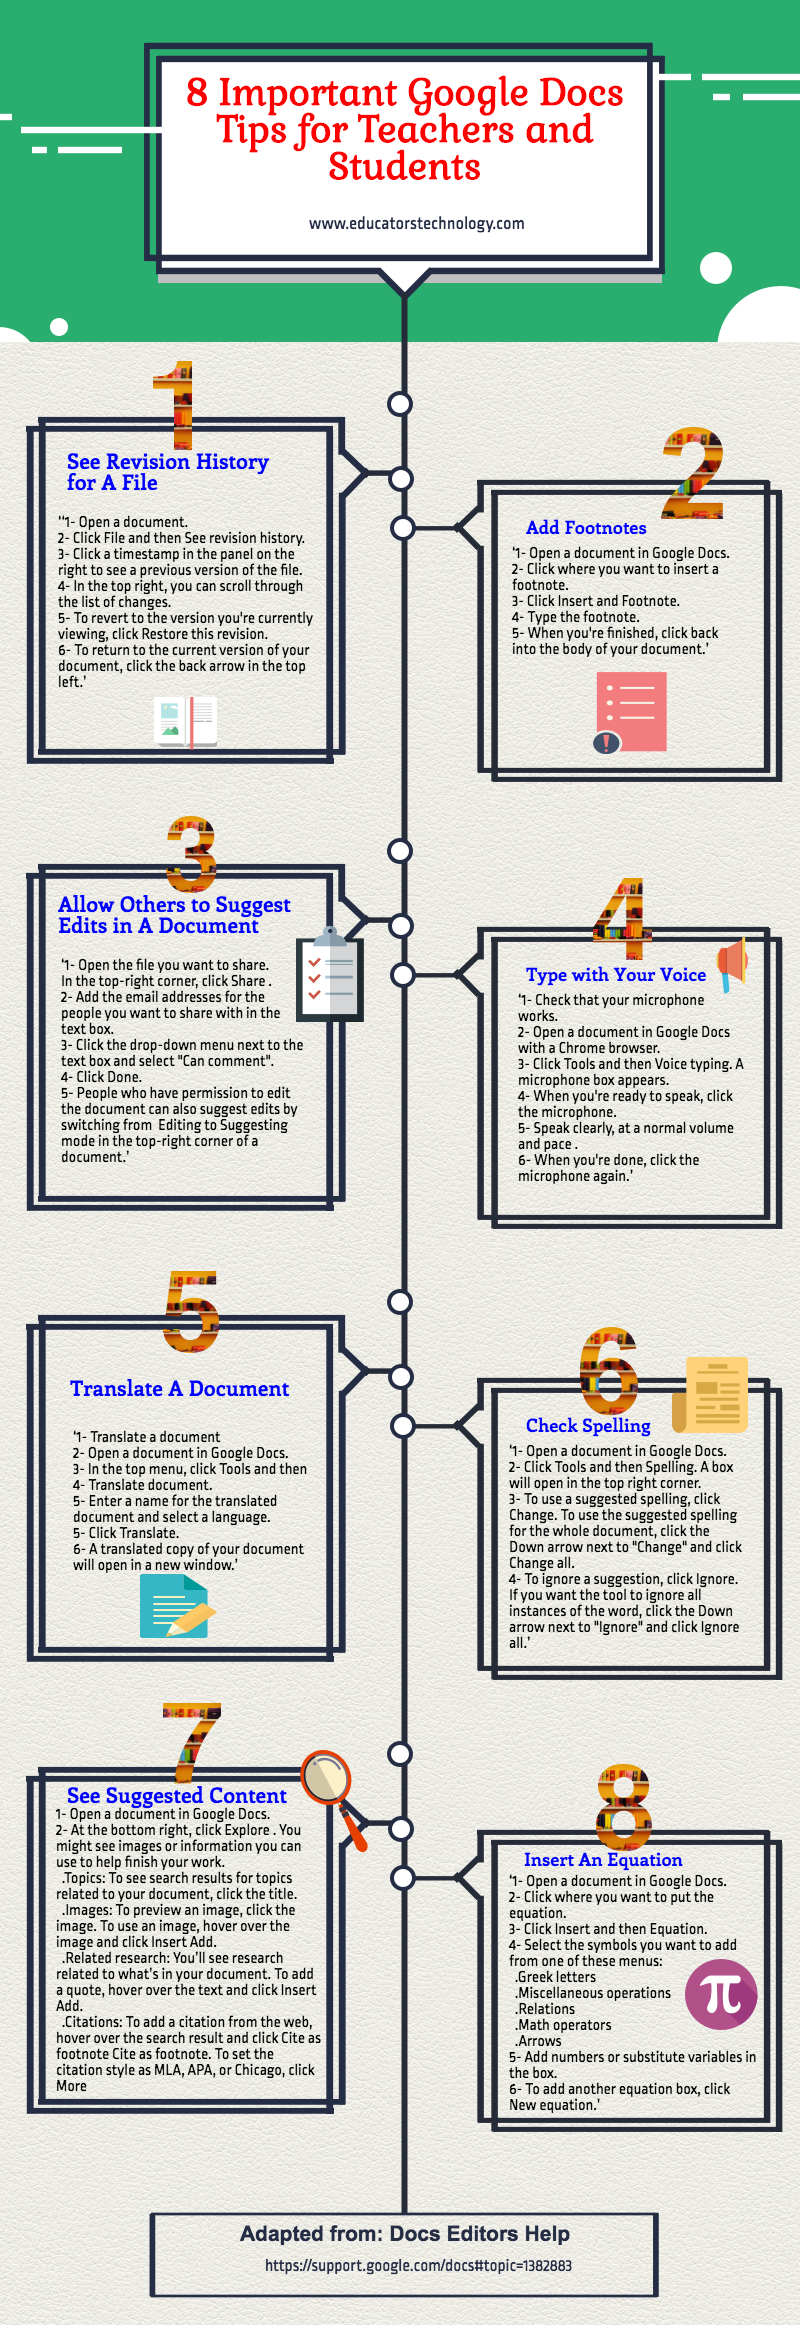 8 Important Google Docs Tips for Teachers and Students